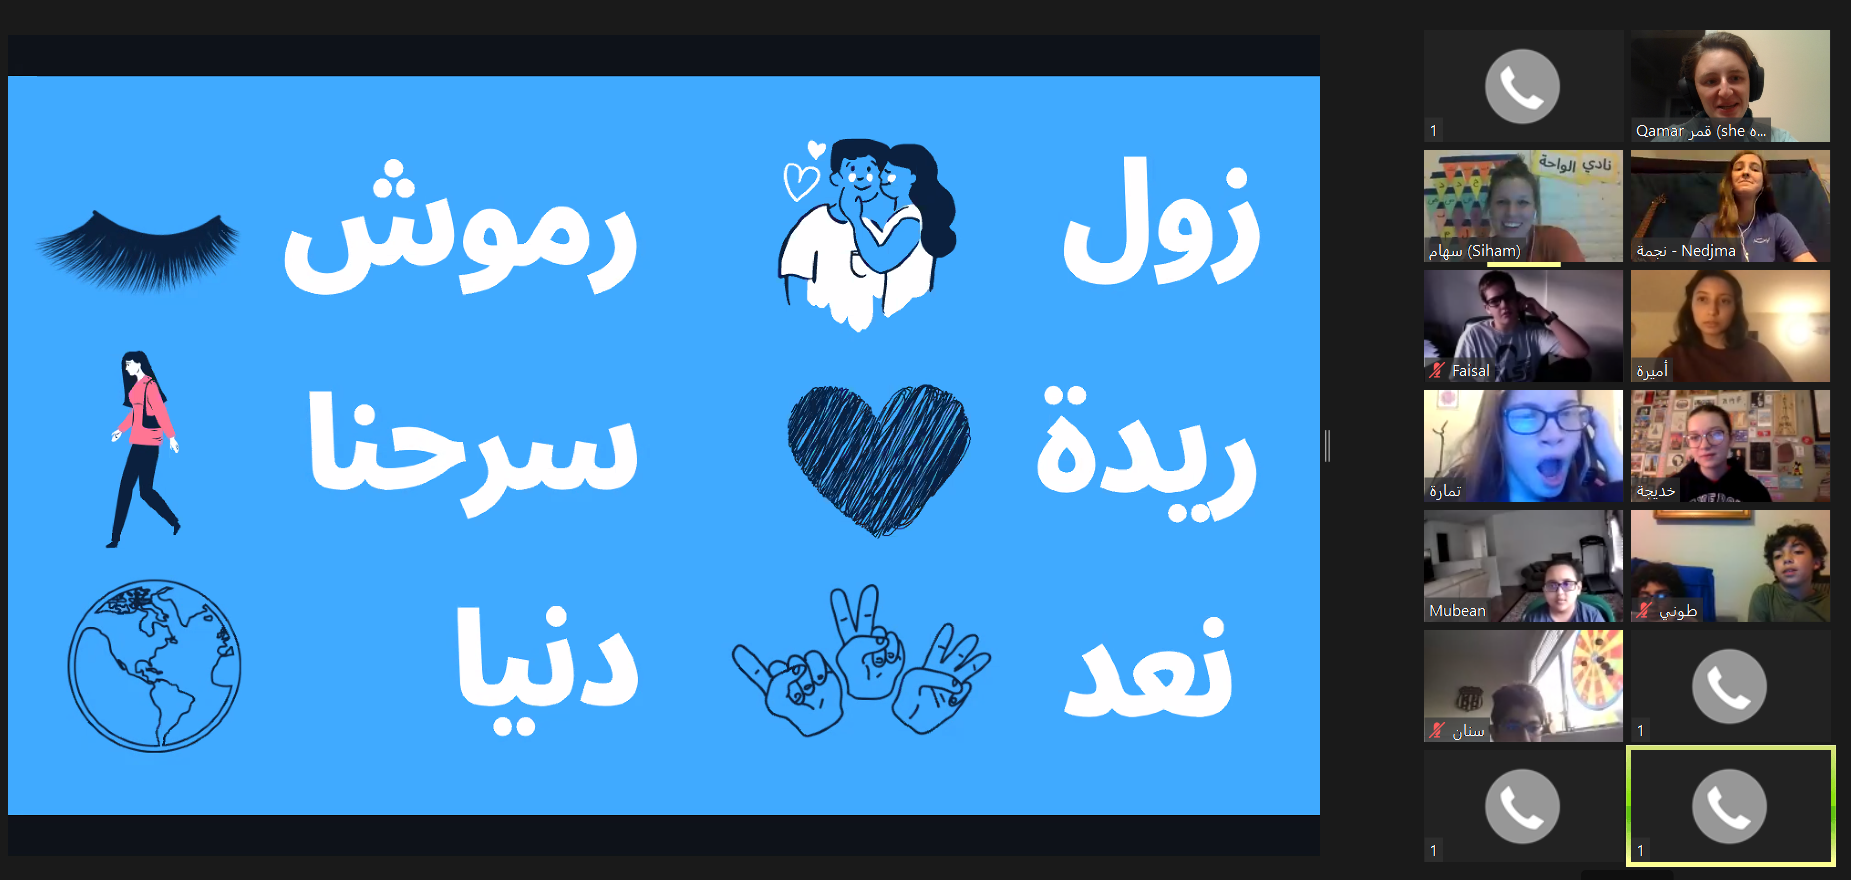 Vocabulary from the lyrics to the song Ahle Eyyoun. The words zowl (darling), ramoush (eyelashes), riida (love), naad (counting), sarahna (we will travel), and dunia (world).